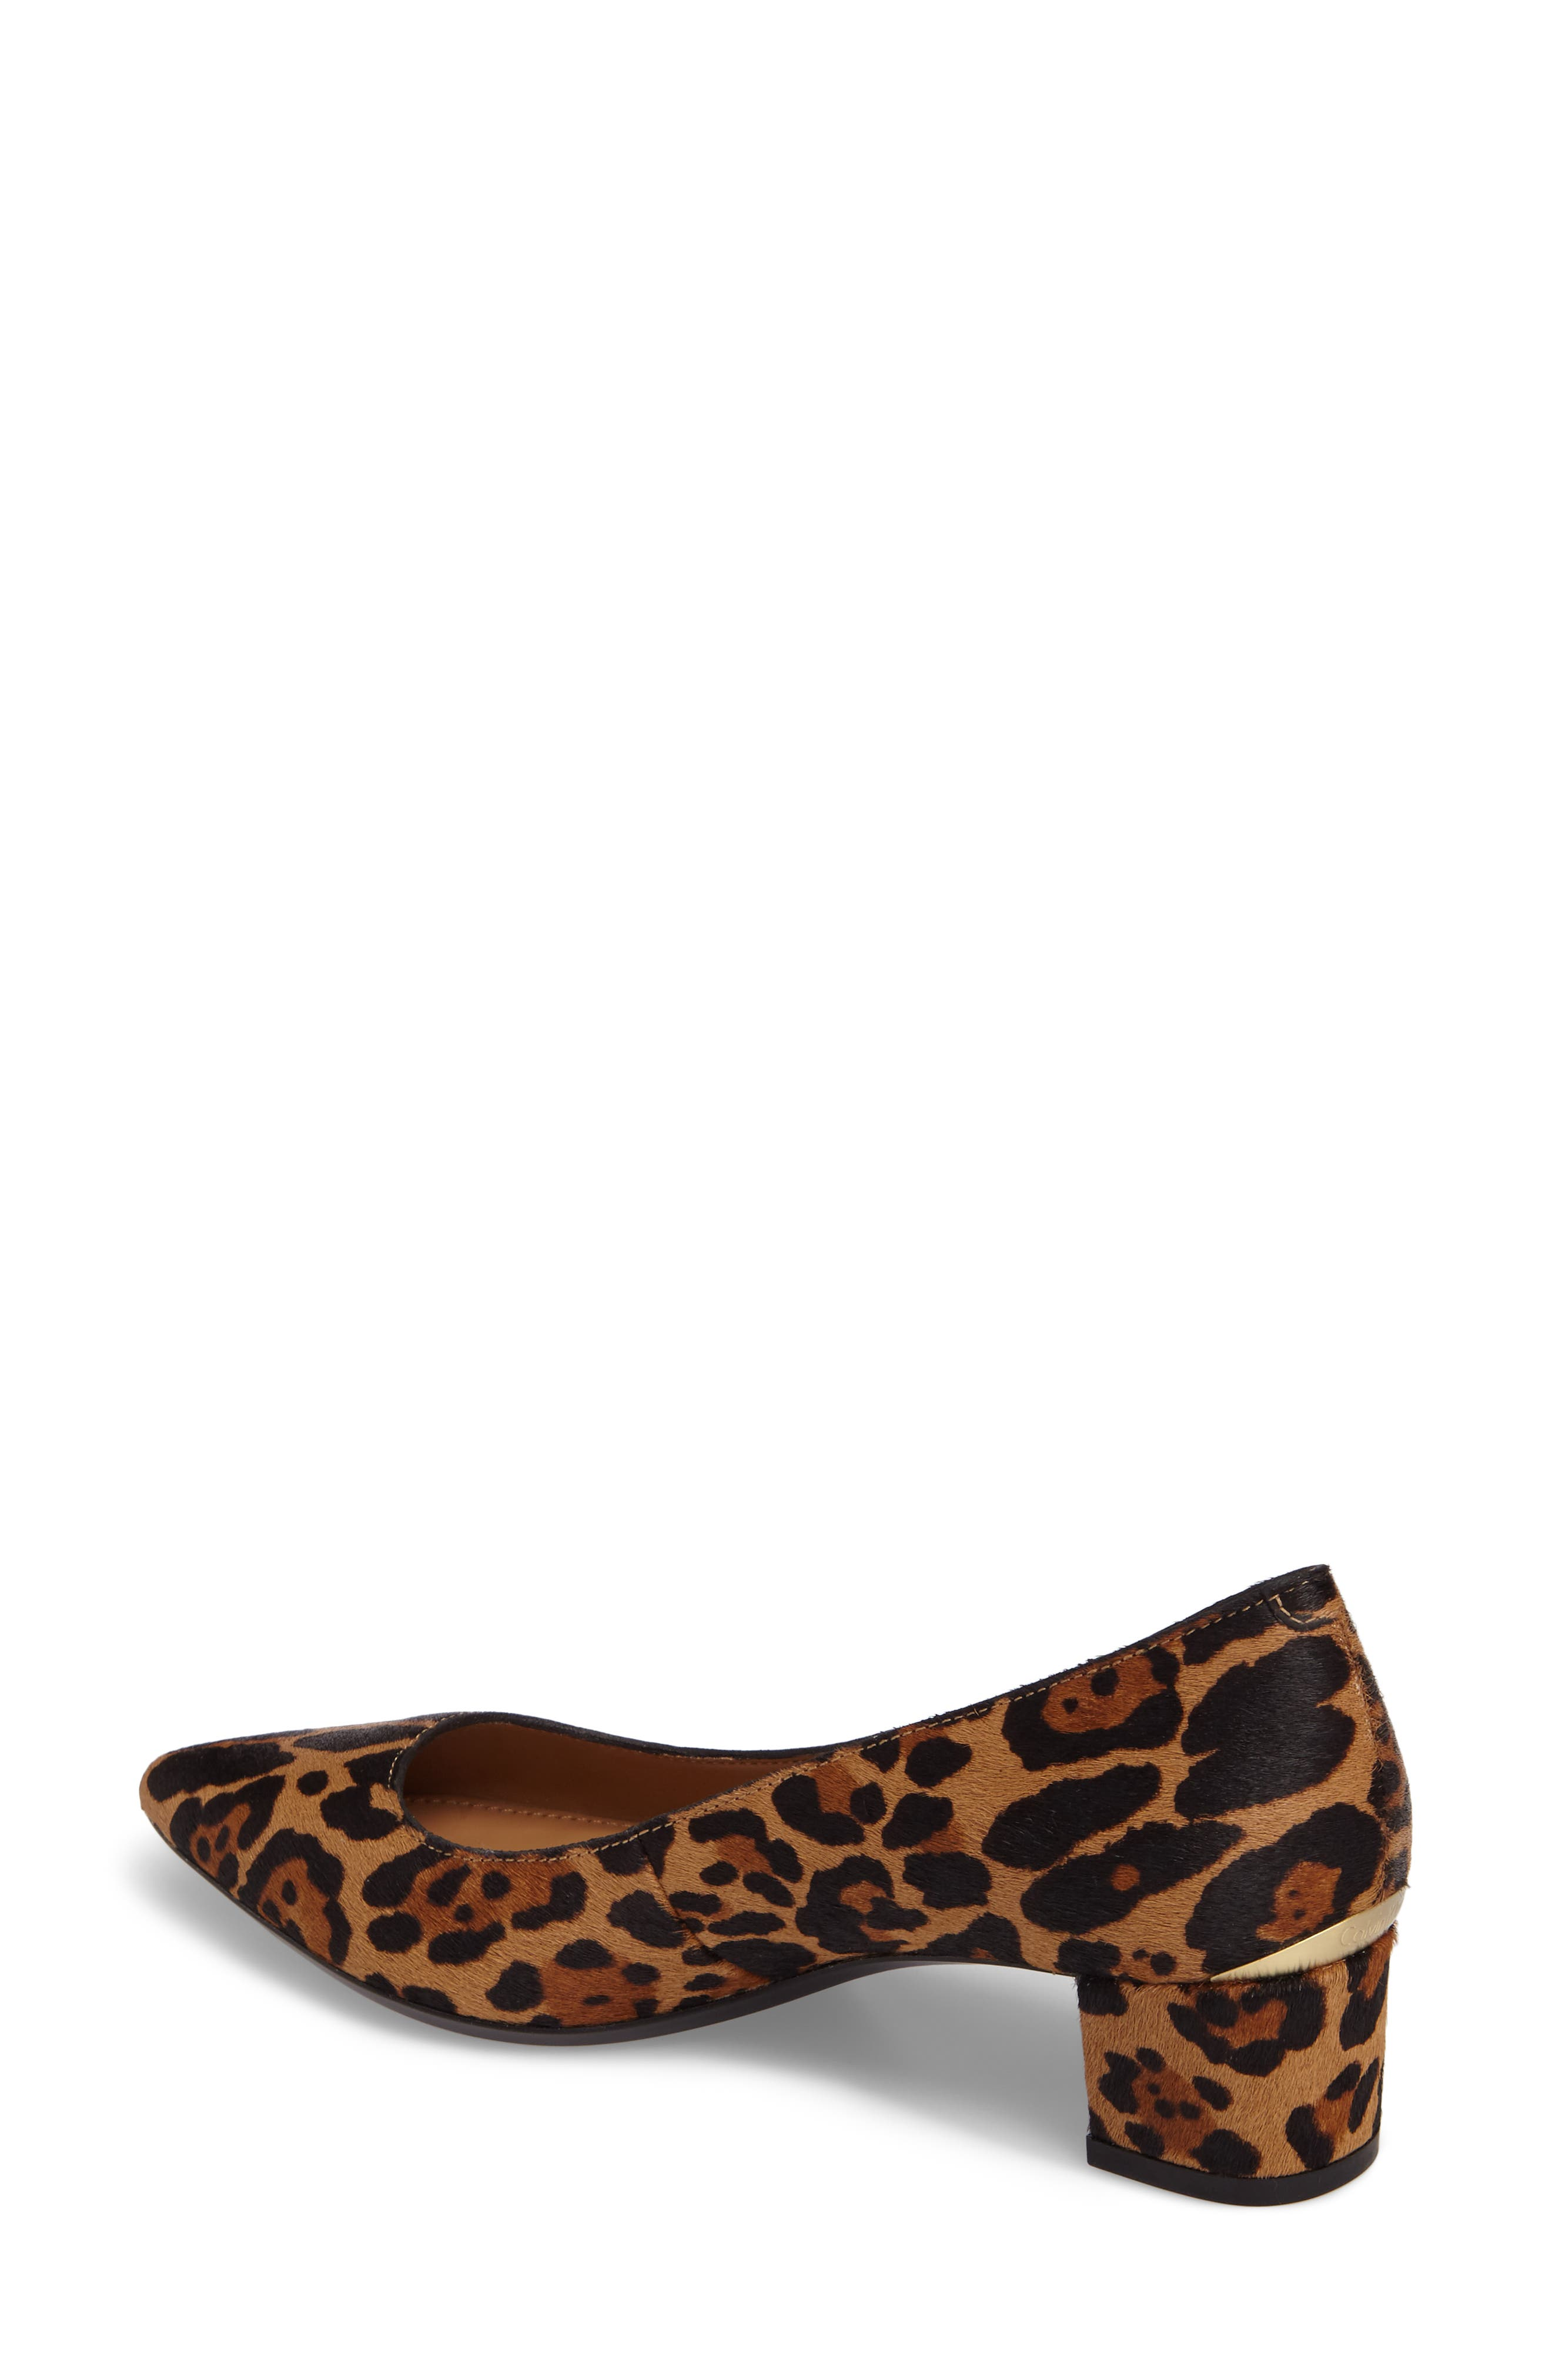 Genoveva Pump,                             Alternate thumbnail 2, color,                             Natural Leopard Hair Calf